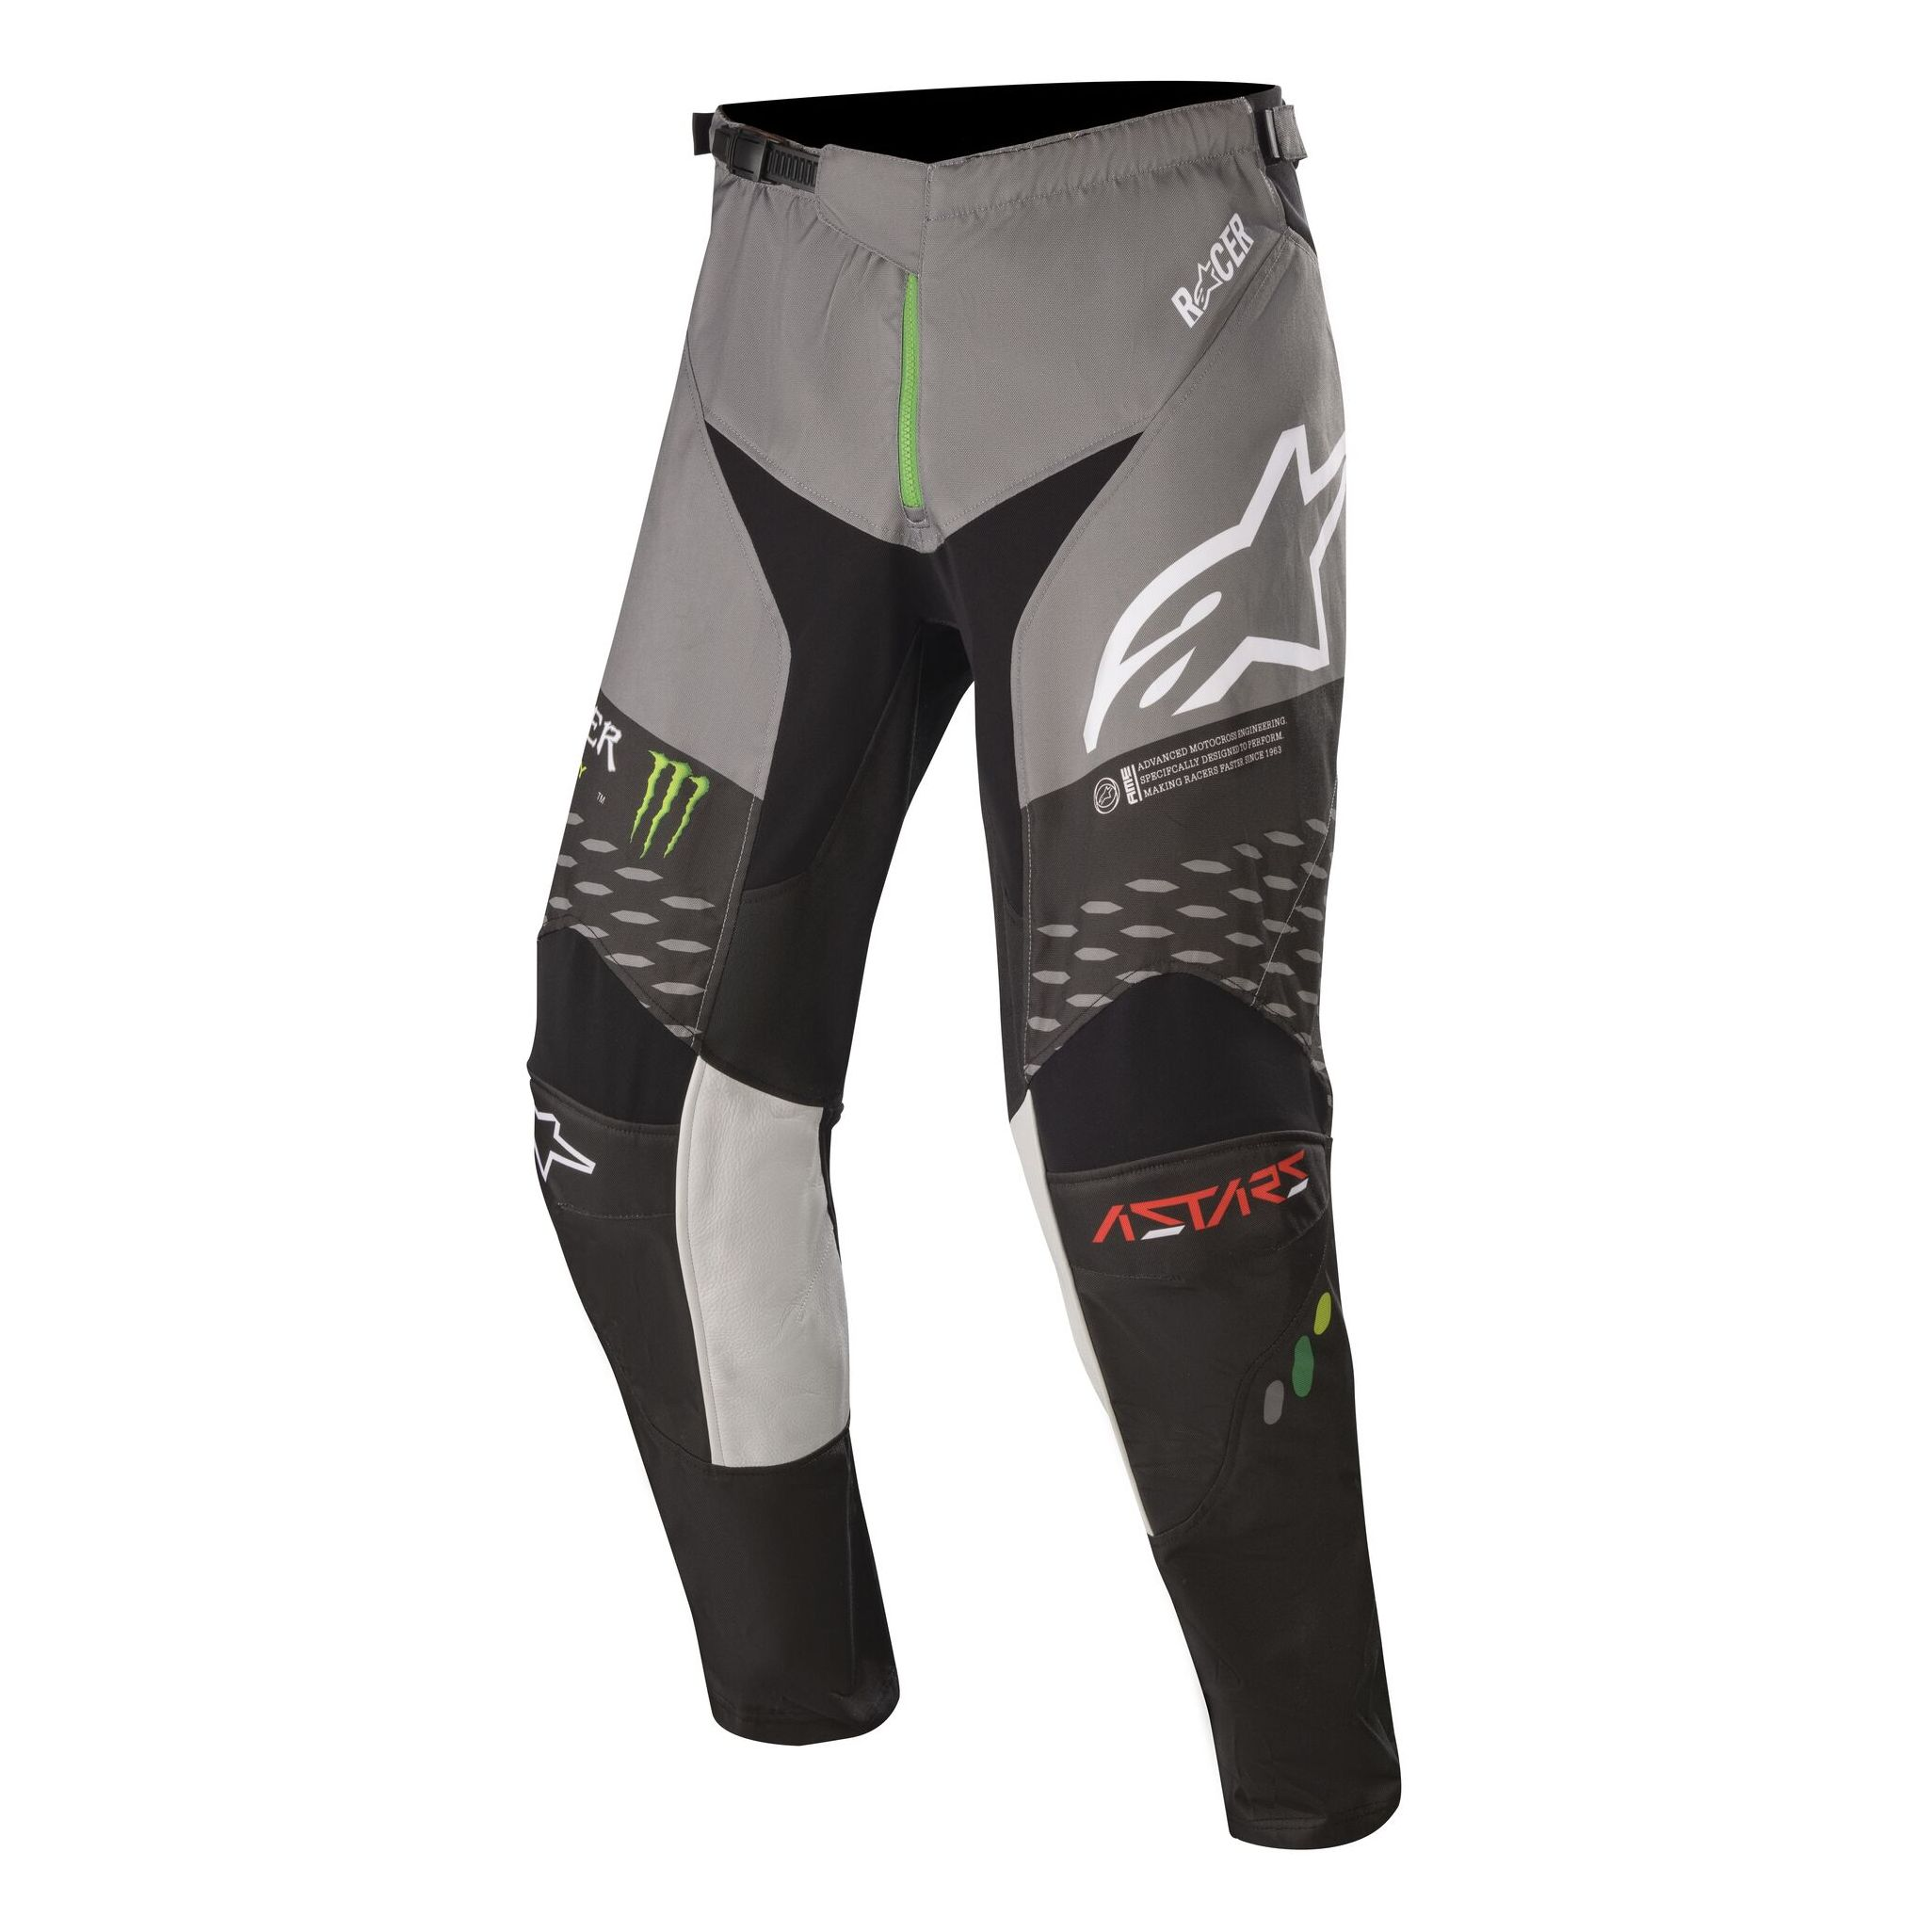 Pantalón de motocross ALPINESTARS MONSTER RAPTOR - MONSTER - BLACK GRAY BRIGHT GREEN 2020